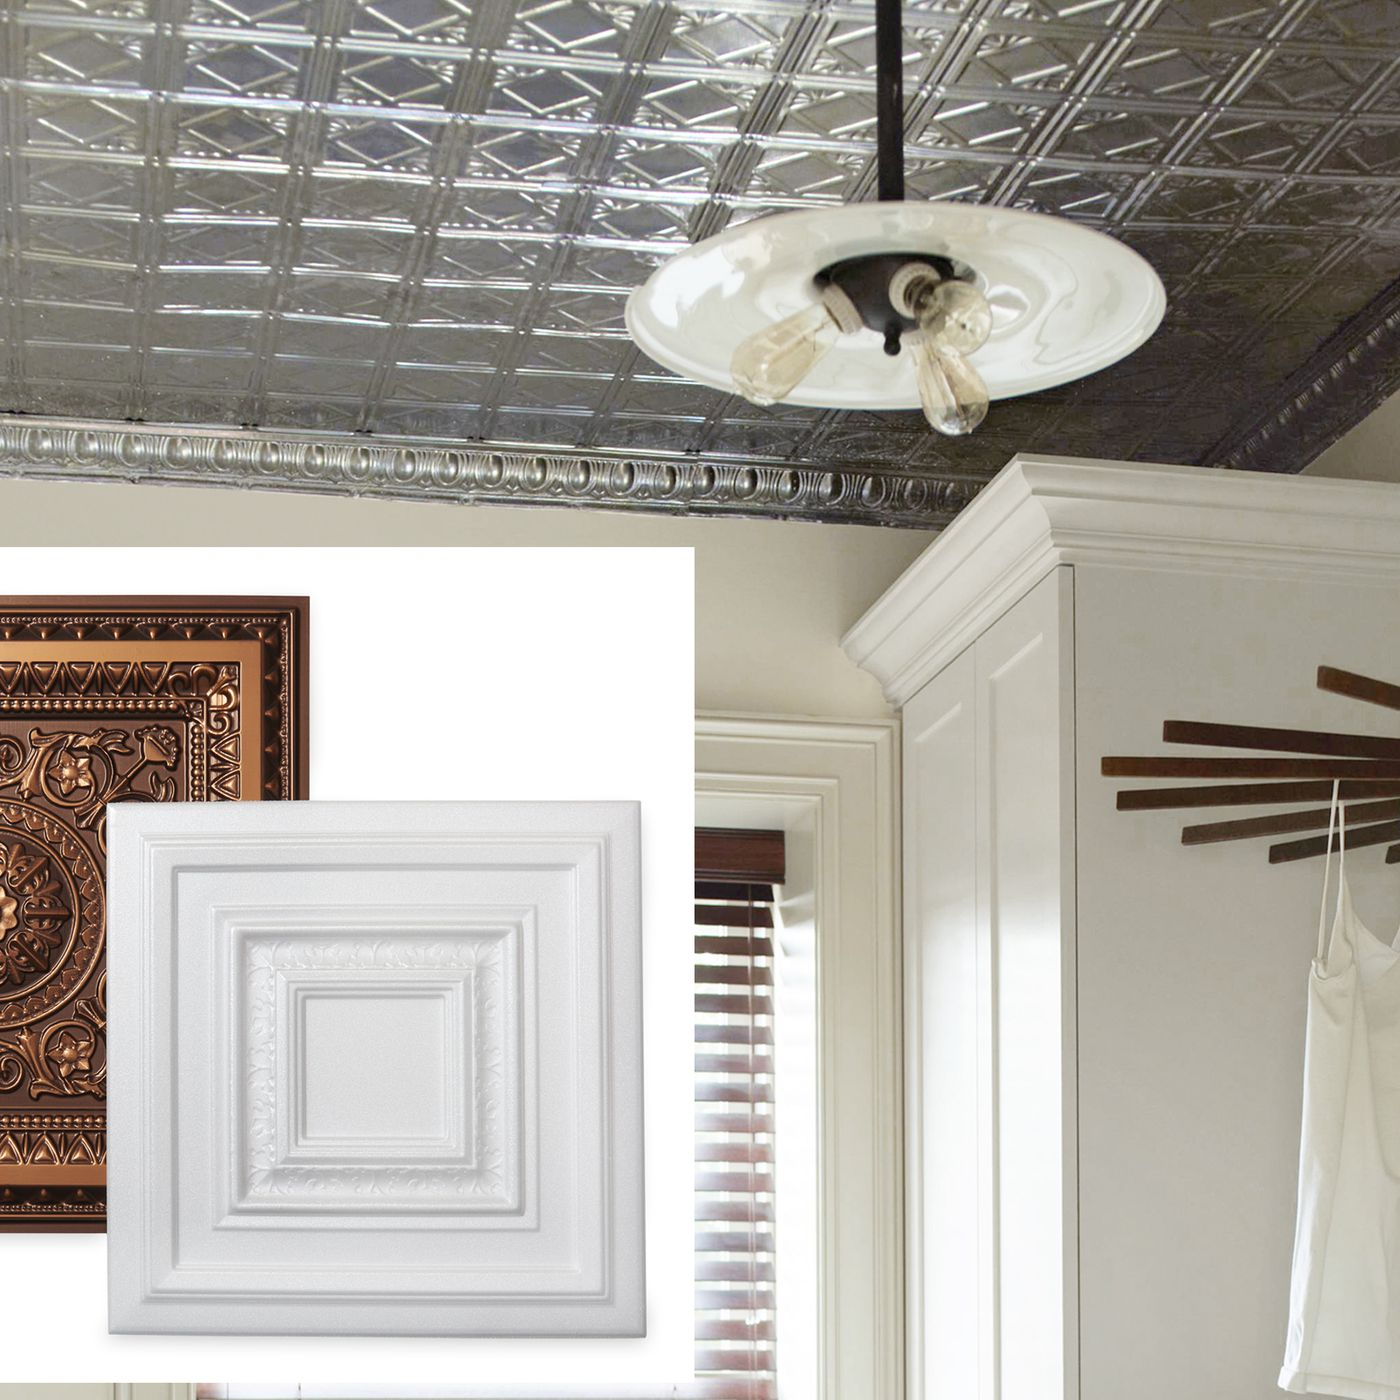 - All About Tin Ceilings - This Old House